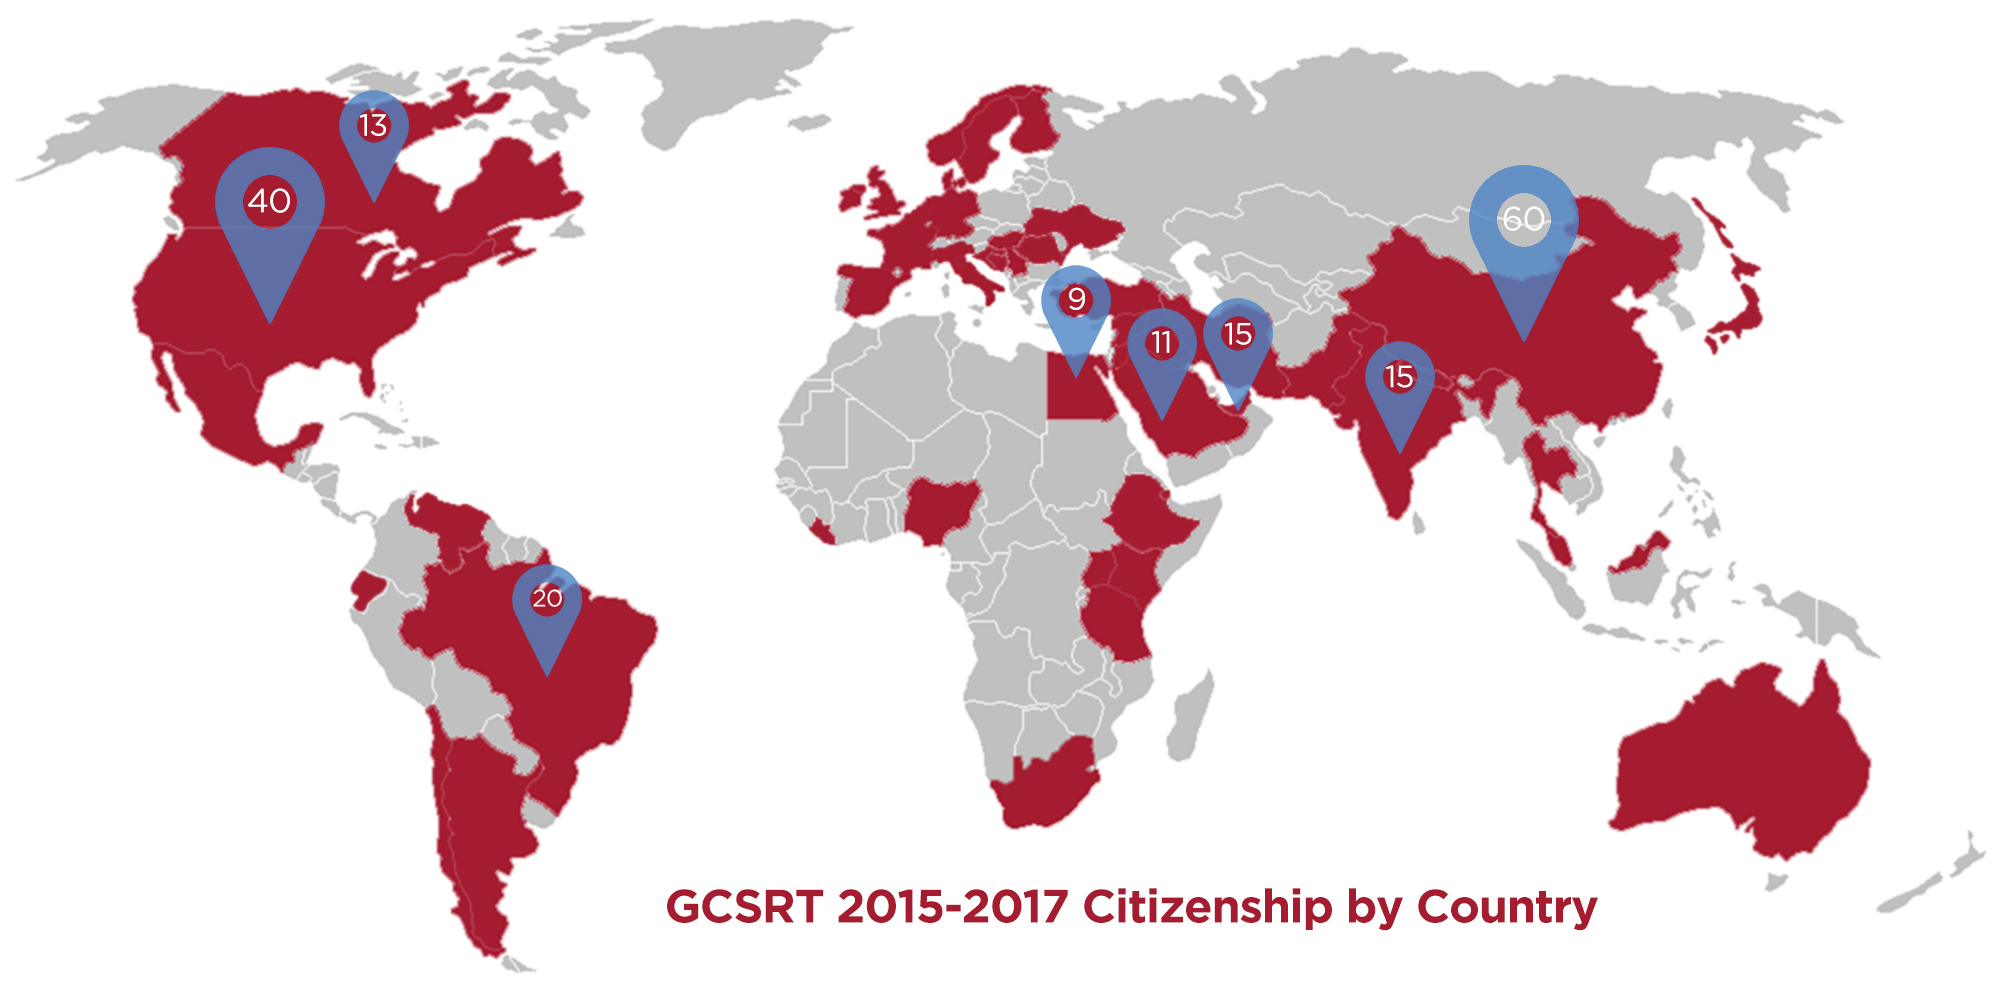 GCSRT Students by Home Country